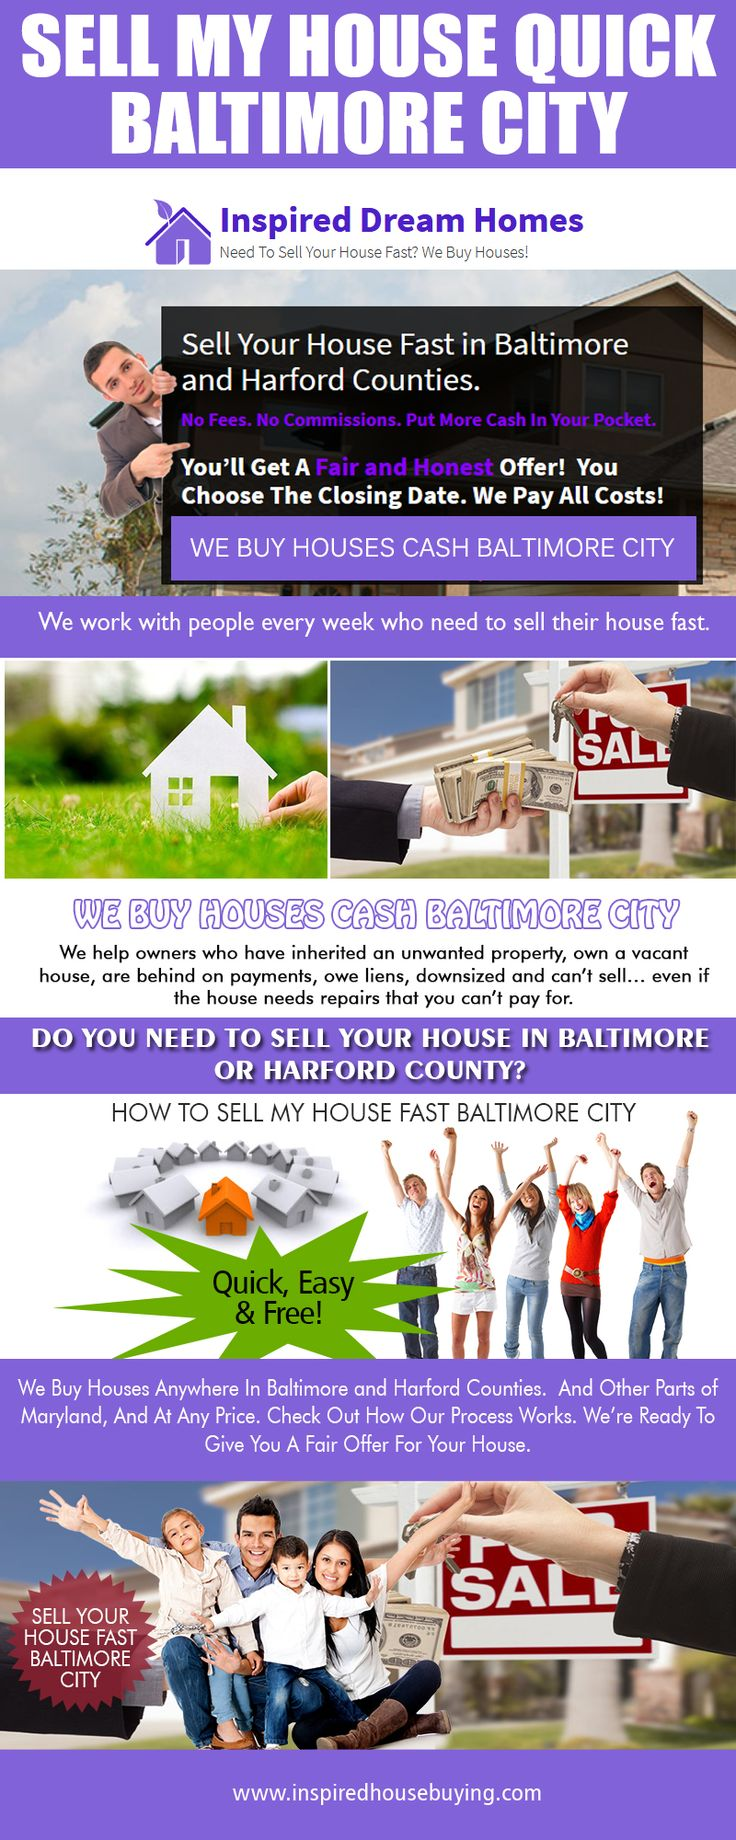 Our Website: http://www.inspiredhousebuying.com/ We Buy Houses Cash Baltimore County from house owners, purchase their restoration and also refurbishment, after that turn and sell the same properties to other individuals at a profit. There is absolutely nothing incorrect with this kind of service - it operates the free enterprise system and nobody deludes any person. People that need cash loan quickly benefit from selling their residences and real estate homes to the financiers.